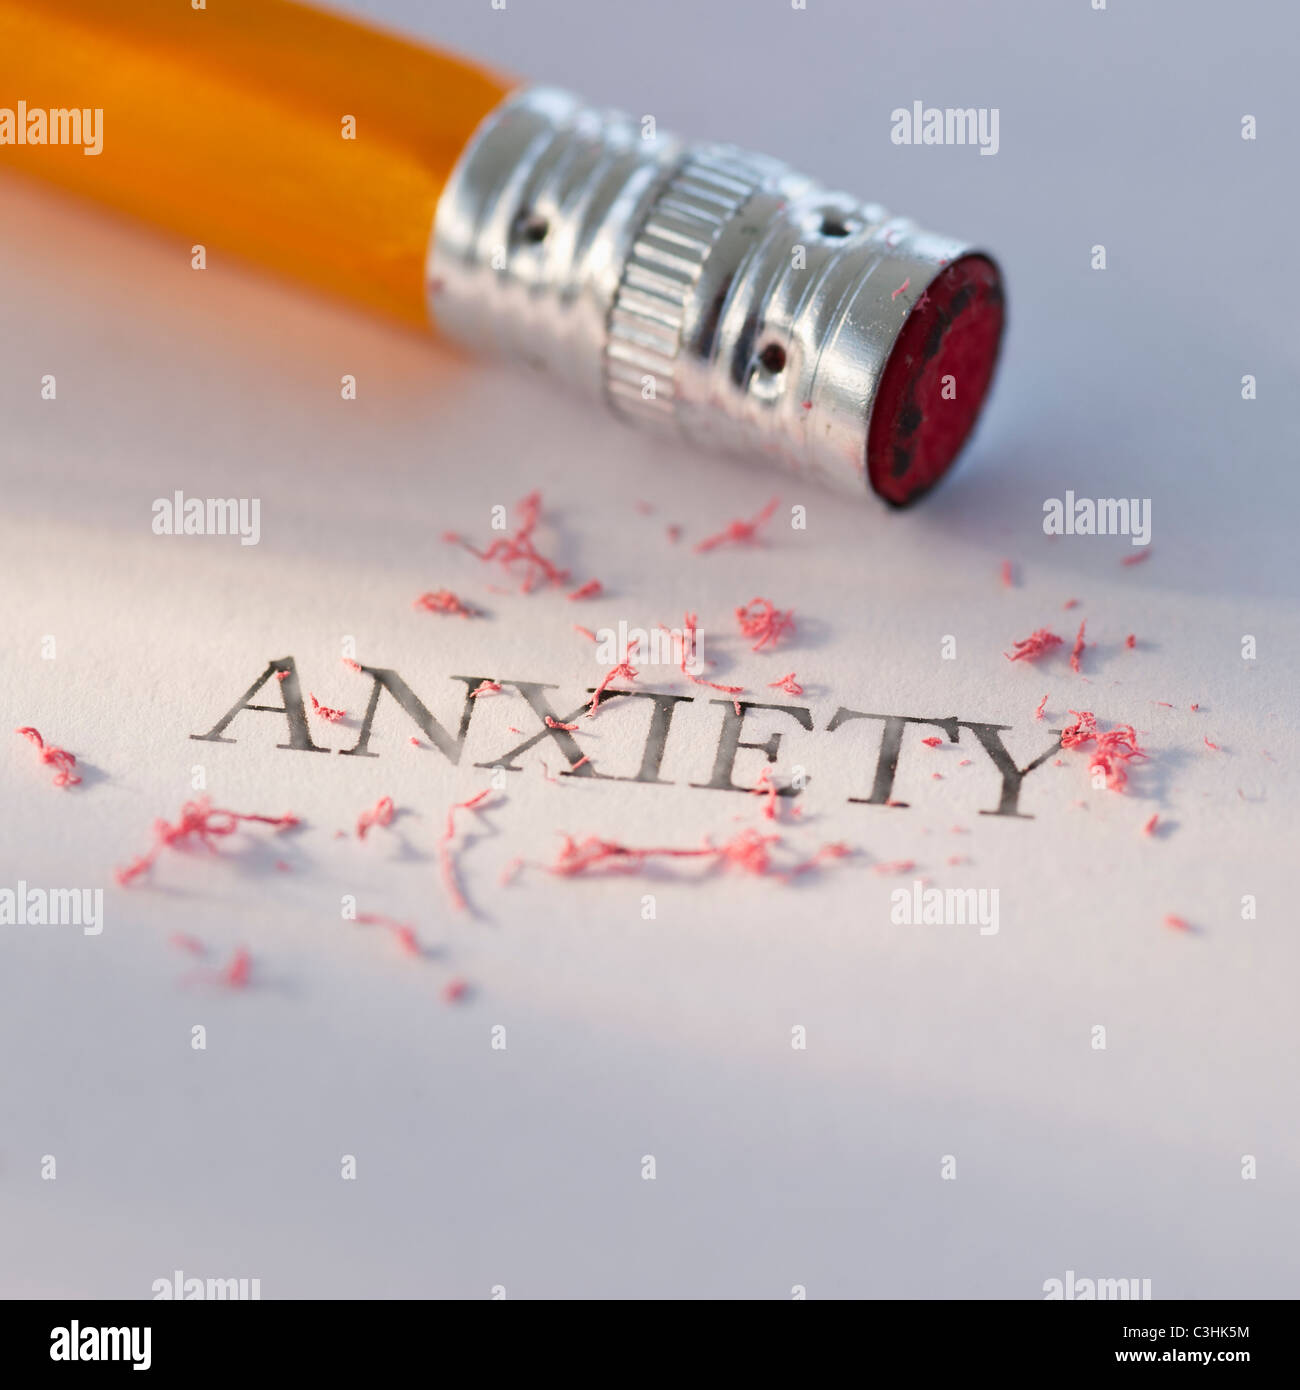 Studio shot of pencil erasing the word anxiety from piece of paper - Stock Image